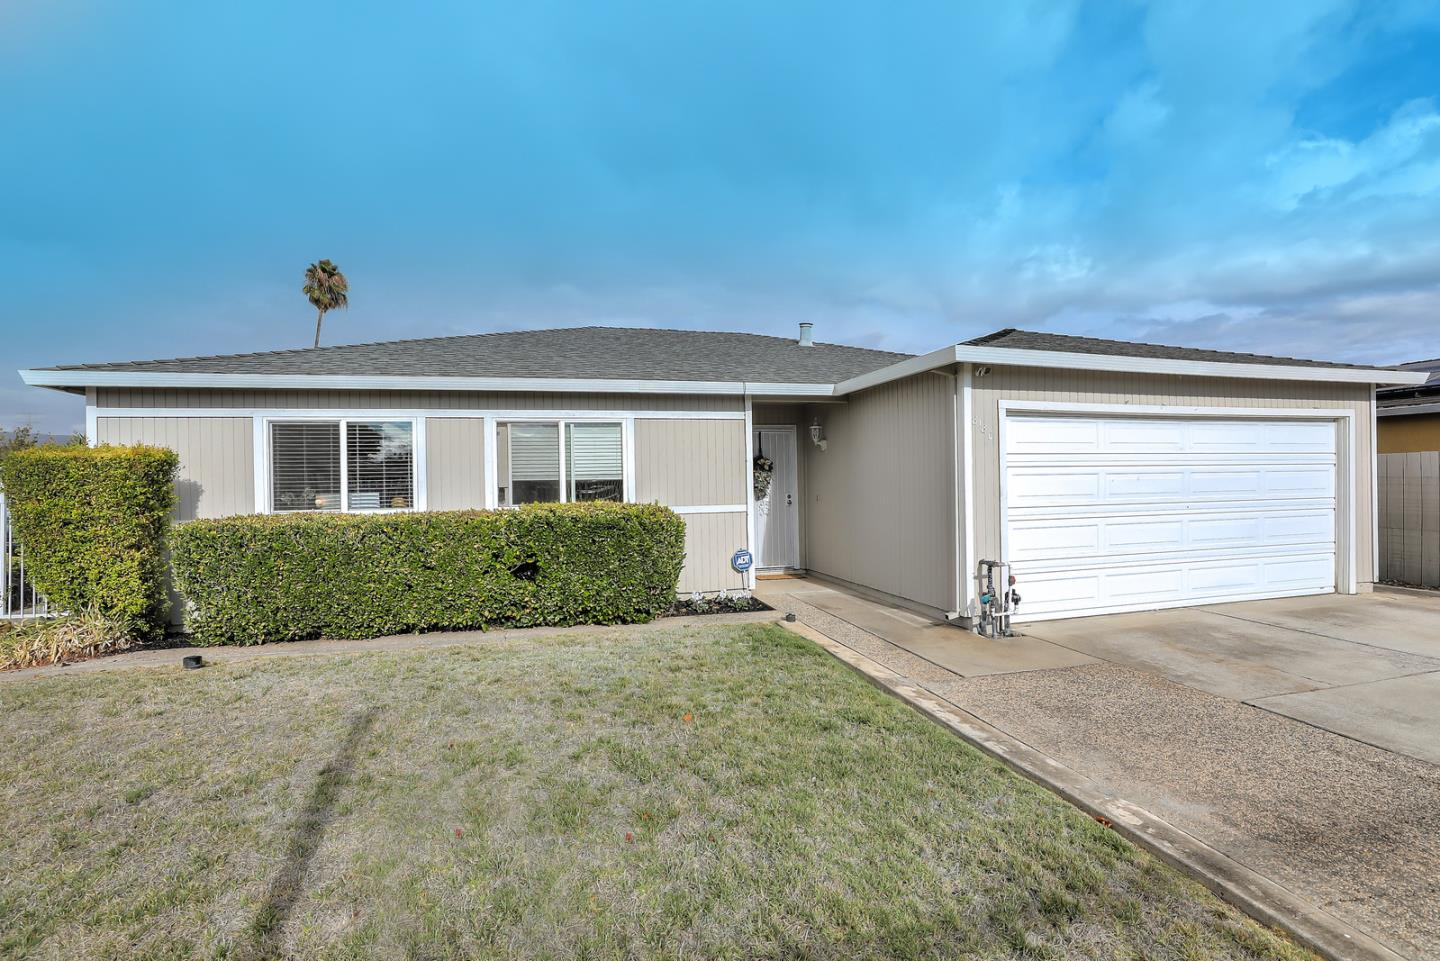 8180 FOREST ST, GILROY, CA 95020